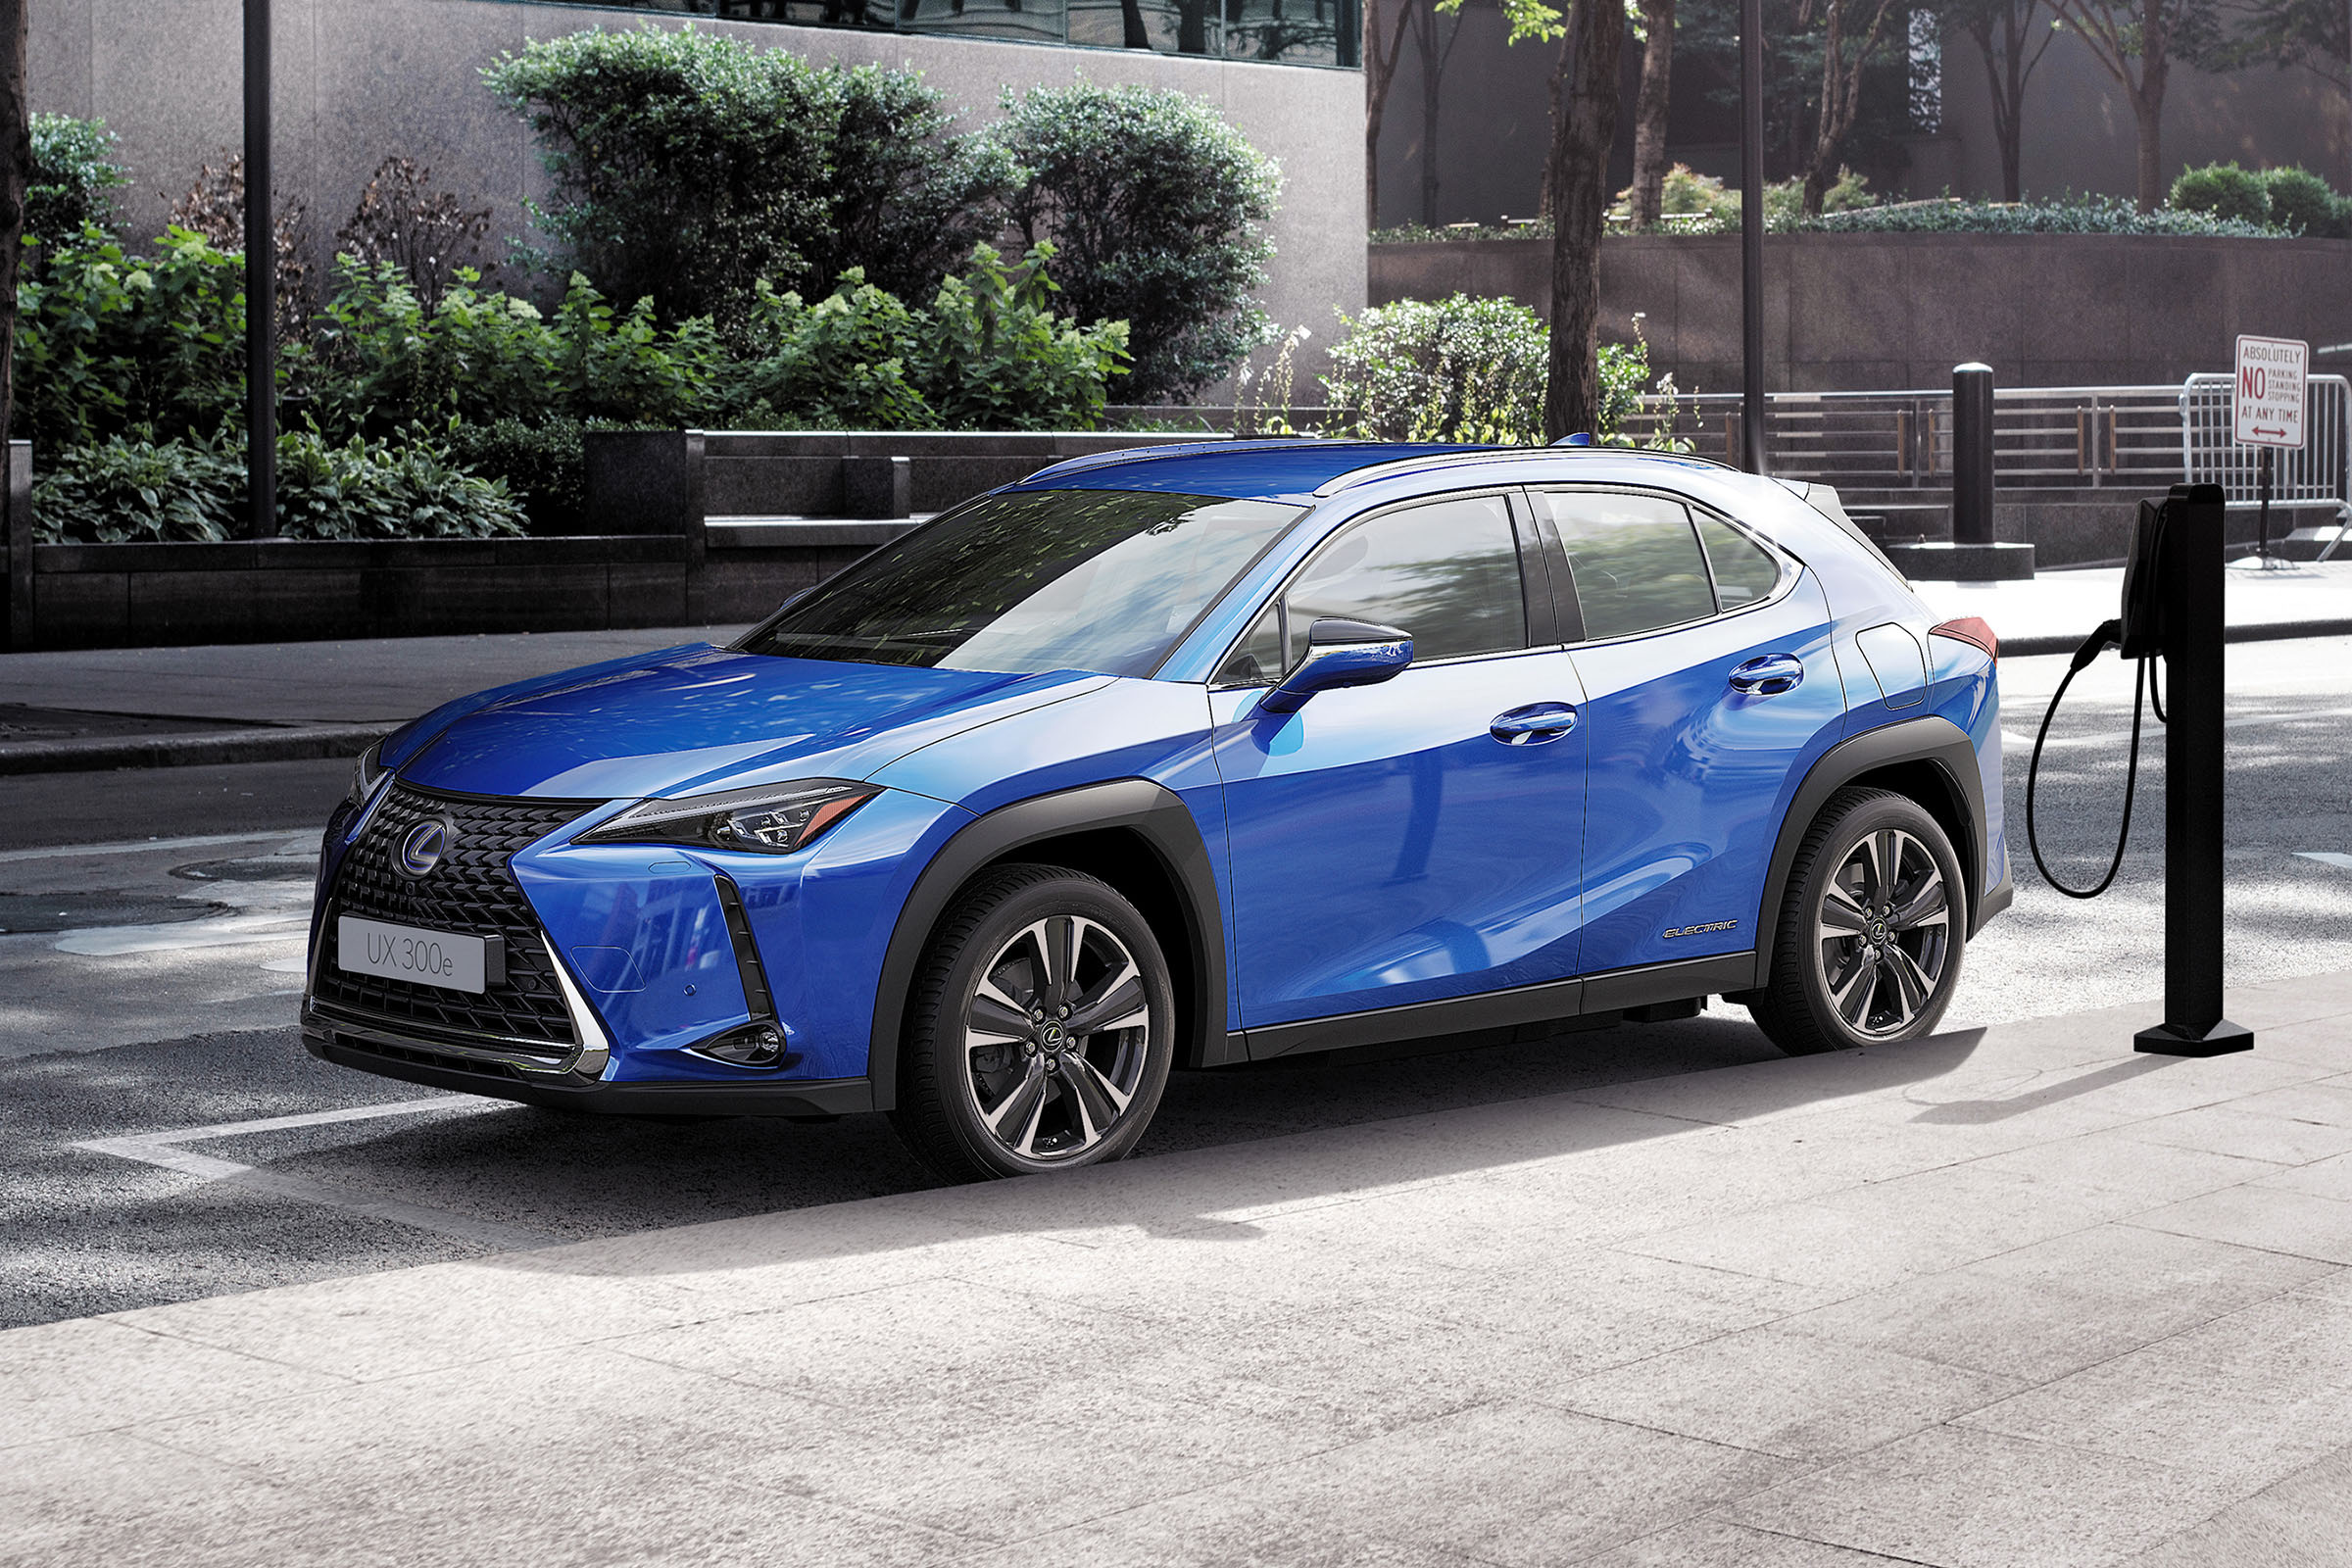 2021 Lexus Ux 300e Electric Suv Details Specs And Pictures Drivingelectric